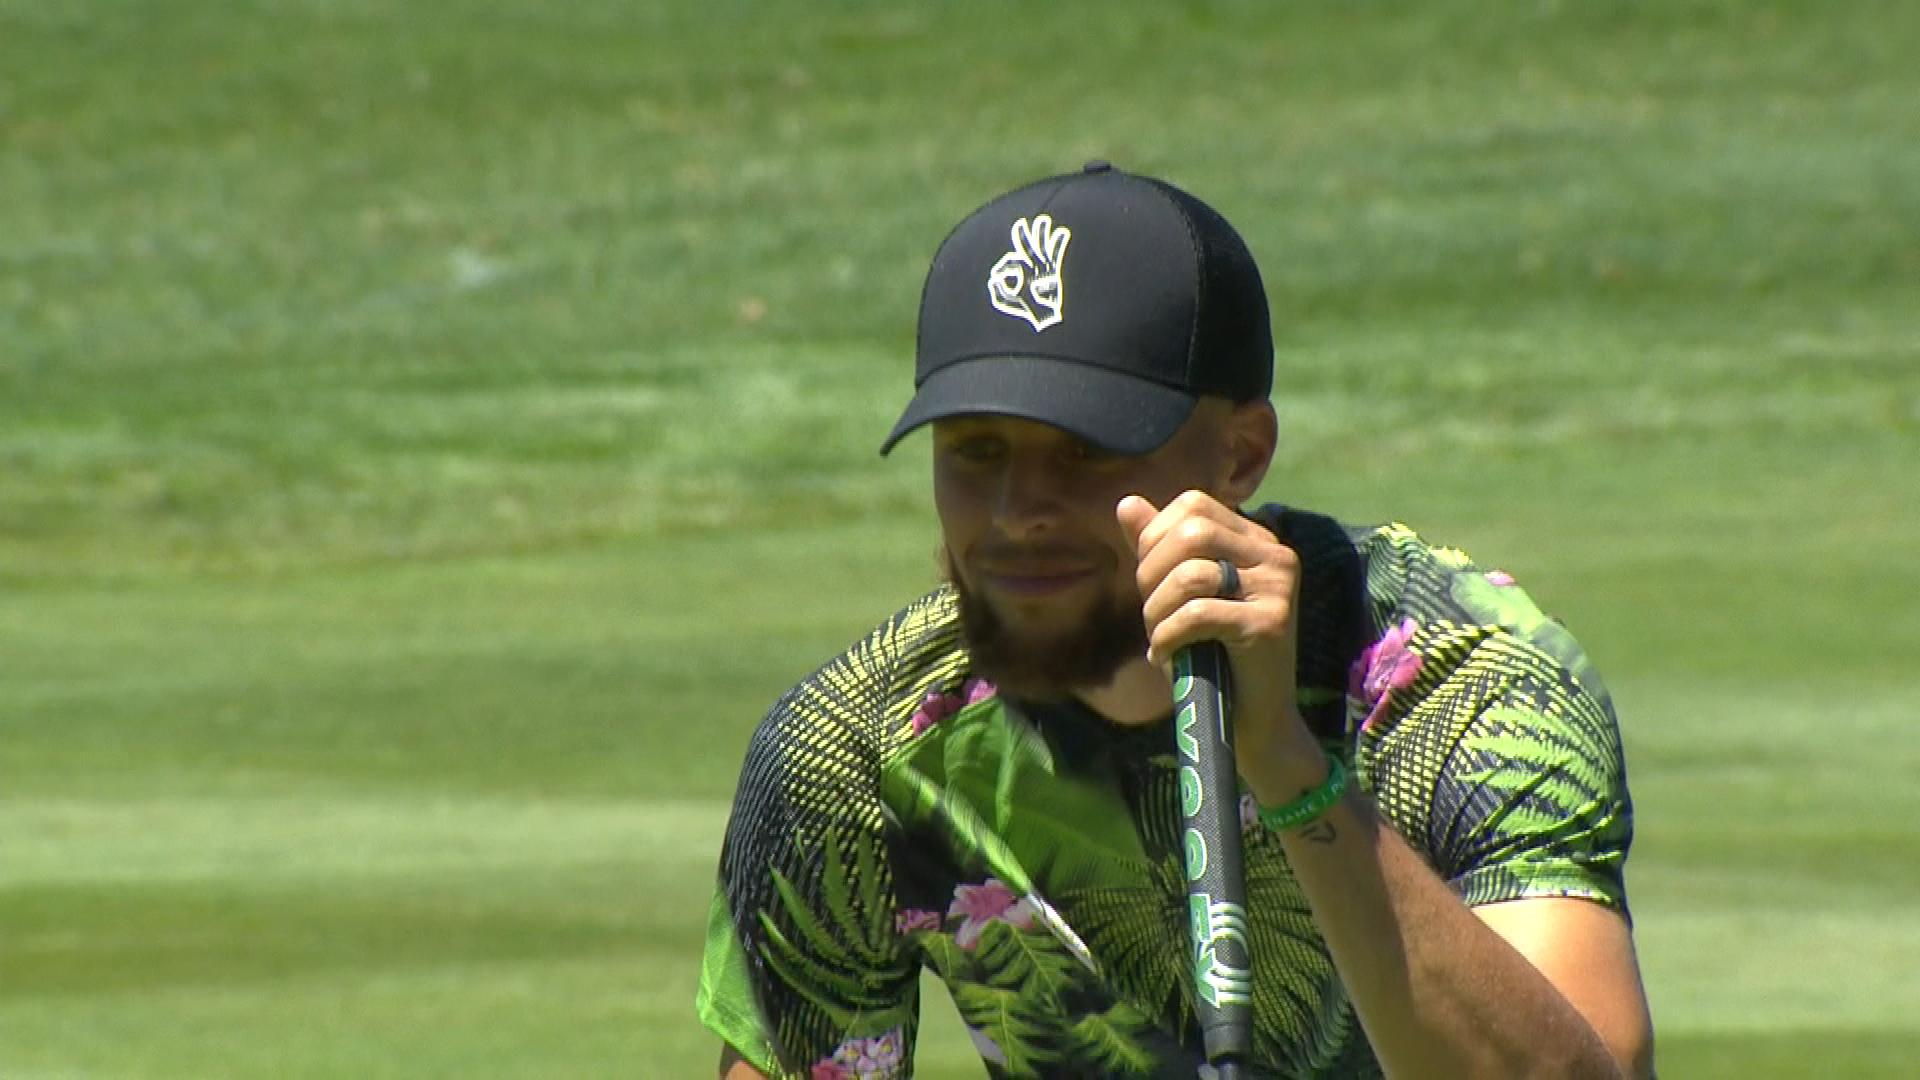 Steph Curry makes birdie on the 18th hole, defeats his father Dell